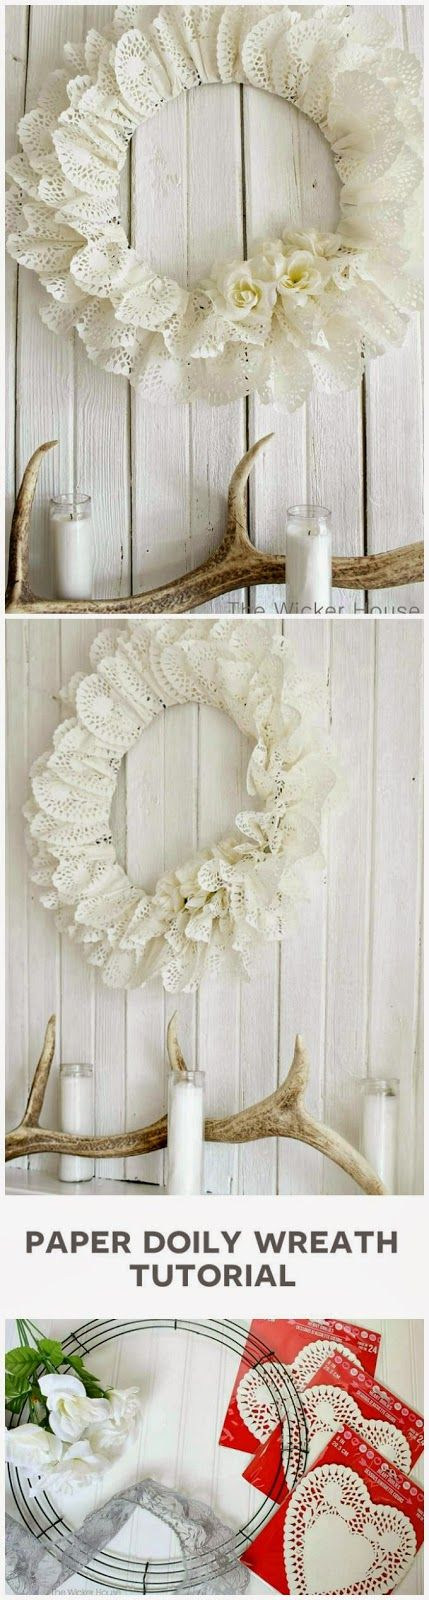 DIY Paper Heart Doily Wreath ~ an everyday beautiful wall hanging... Pretty for Spring!